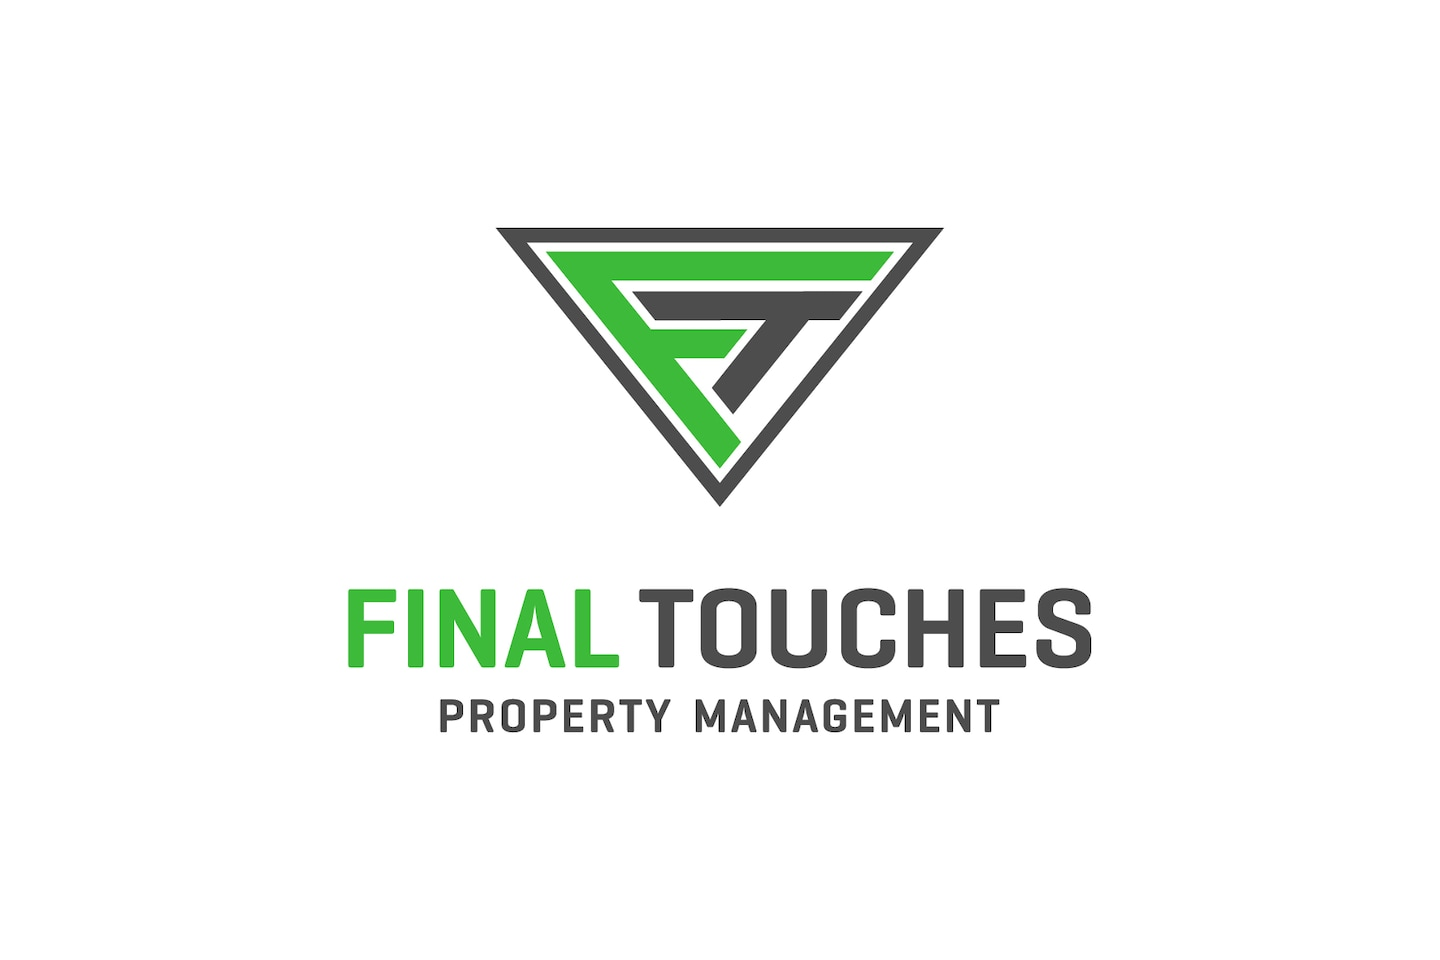 Final Touches Property Management